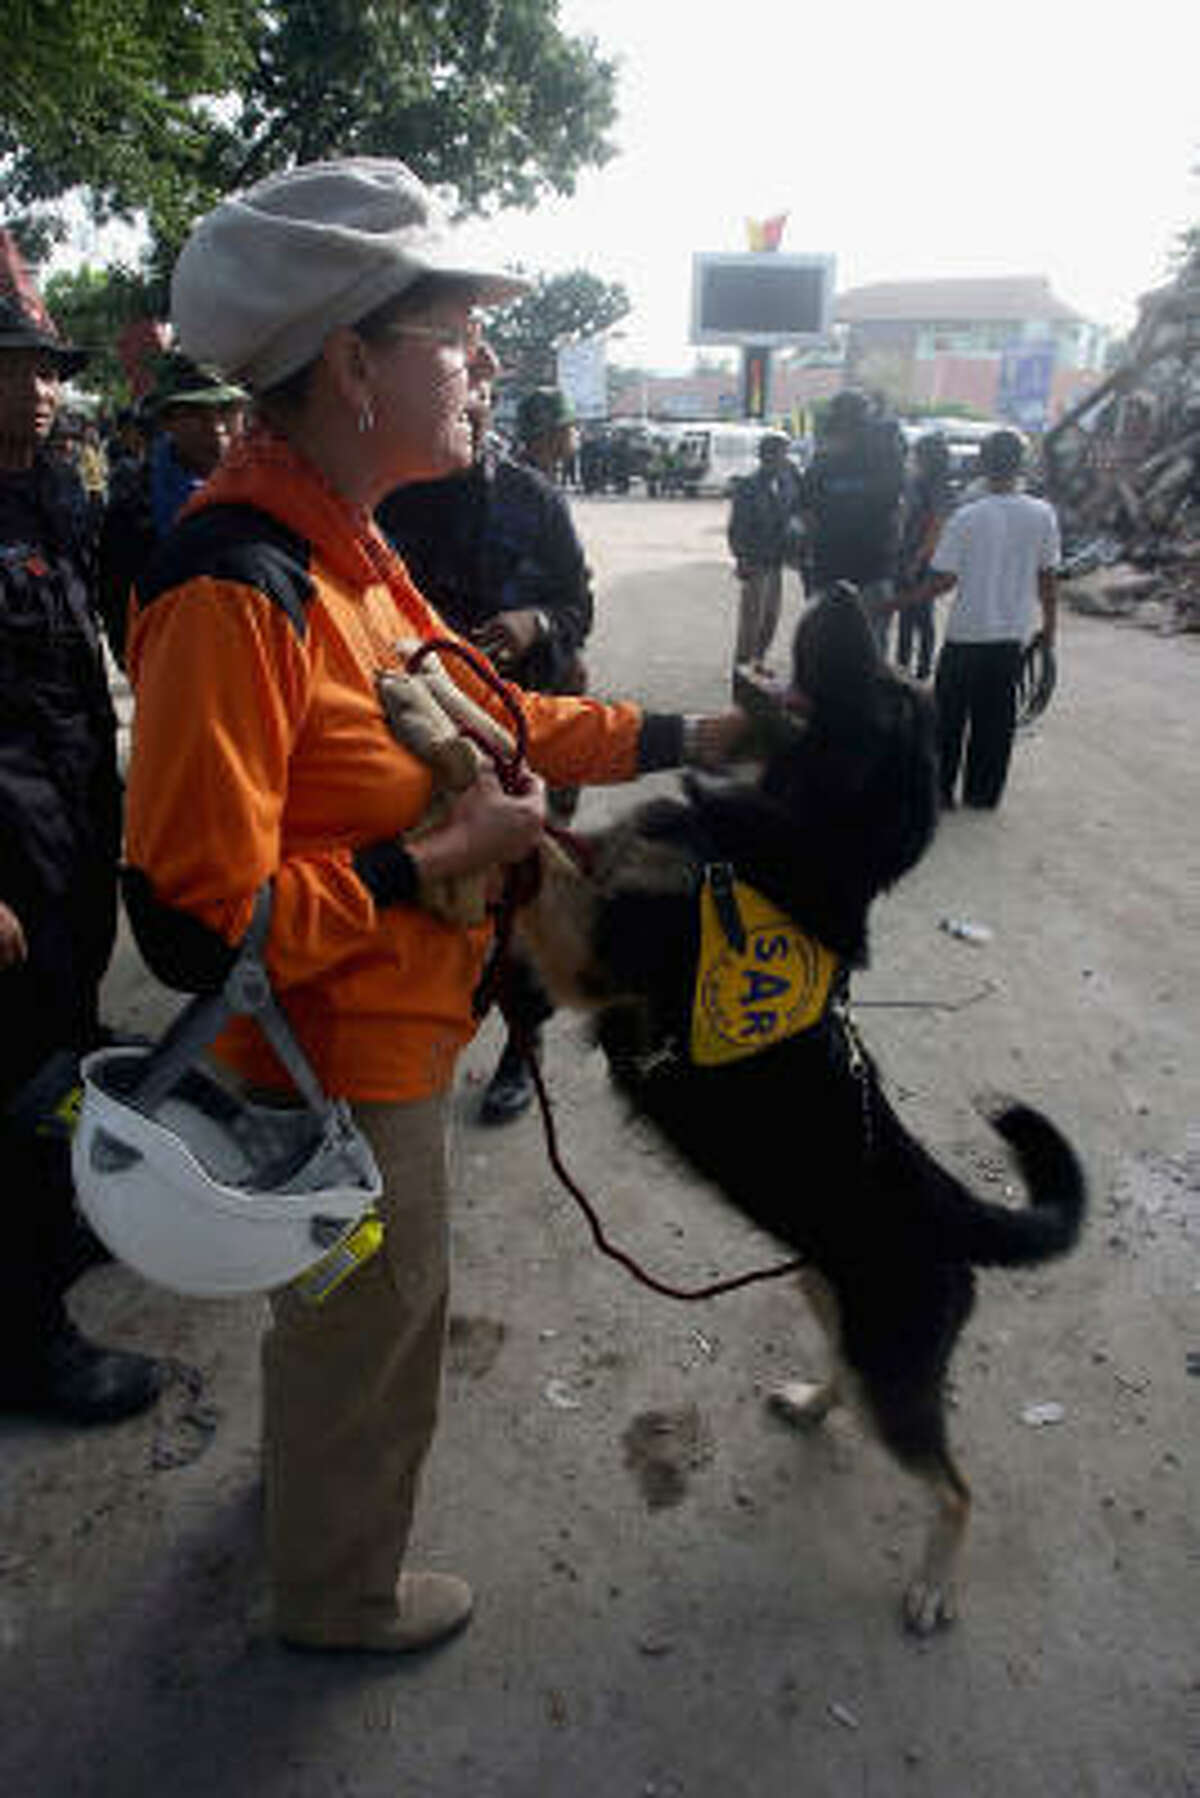 A German rescuer waits with her dog in preparation to assist at the collapsed Ambacang Hotel building site on Oct. 2 in Padang, West Sumatera, Indonesia.